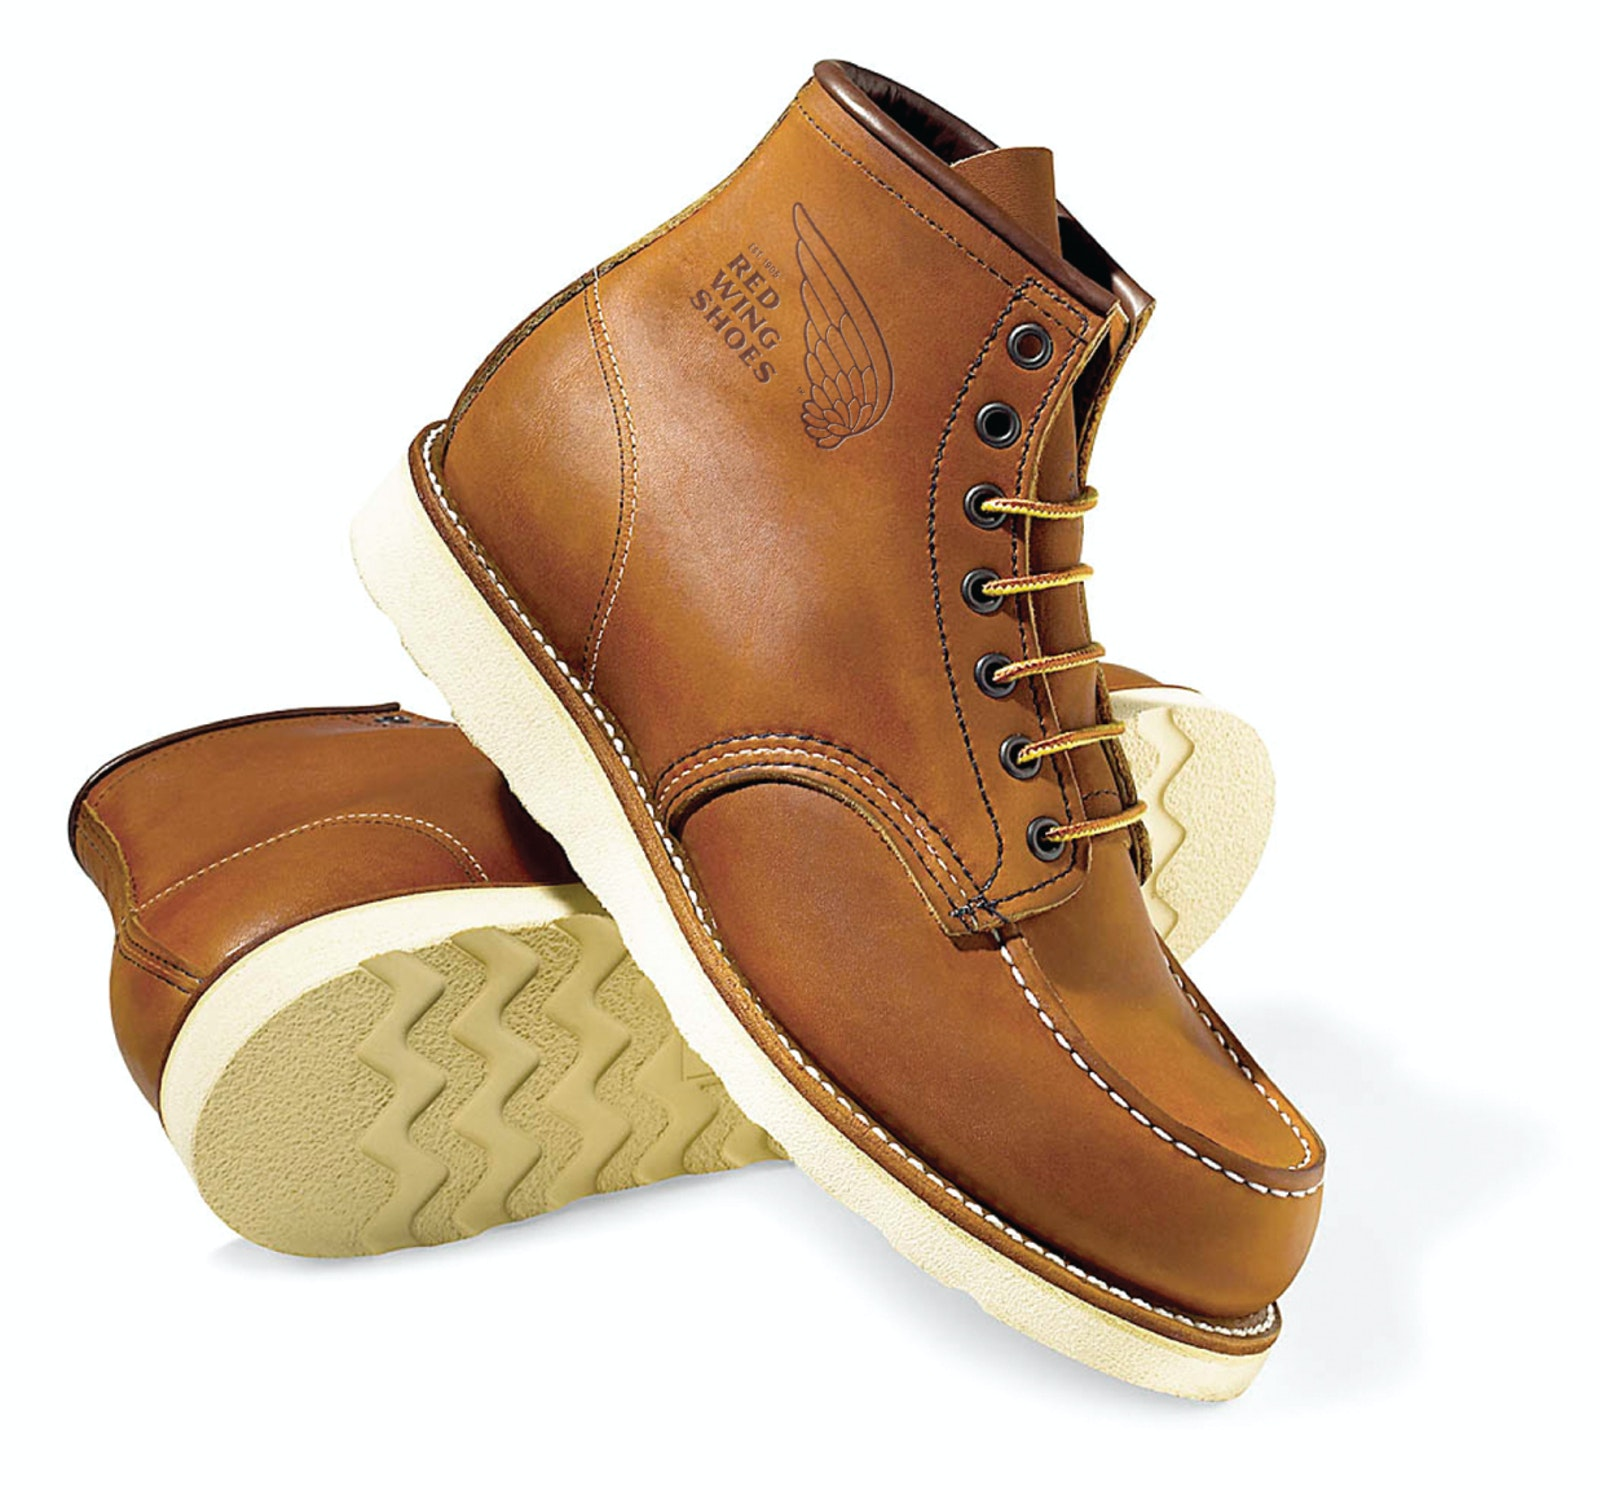 Redwing shoes A